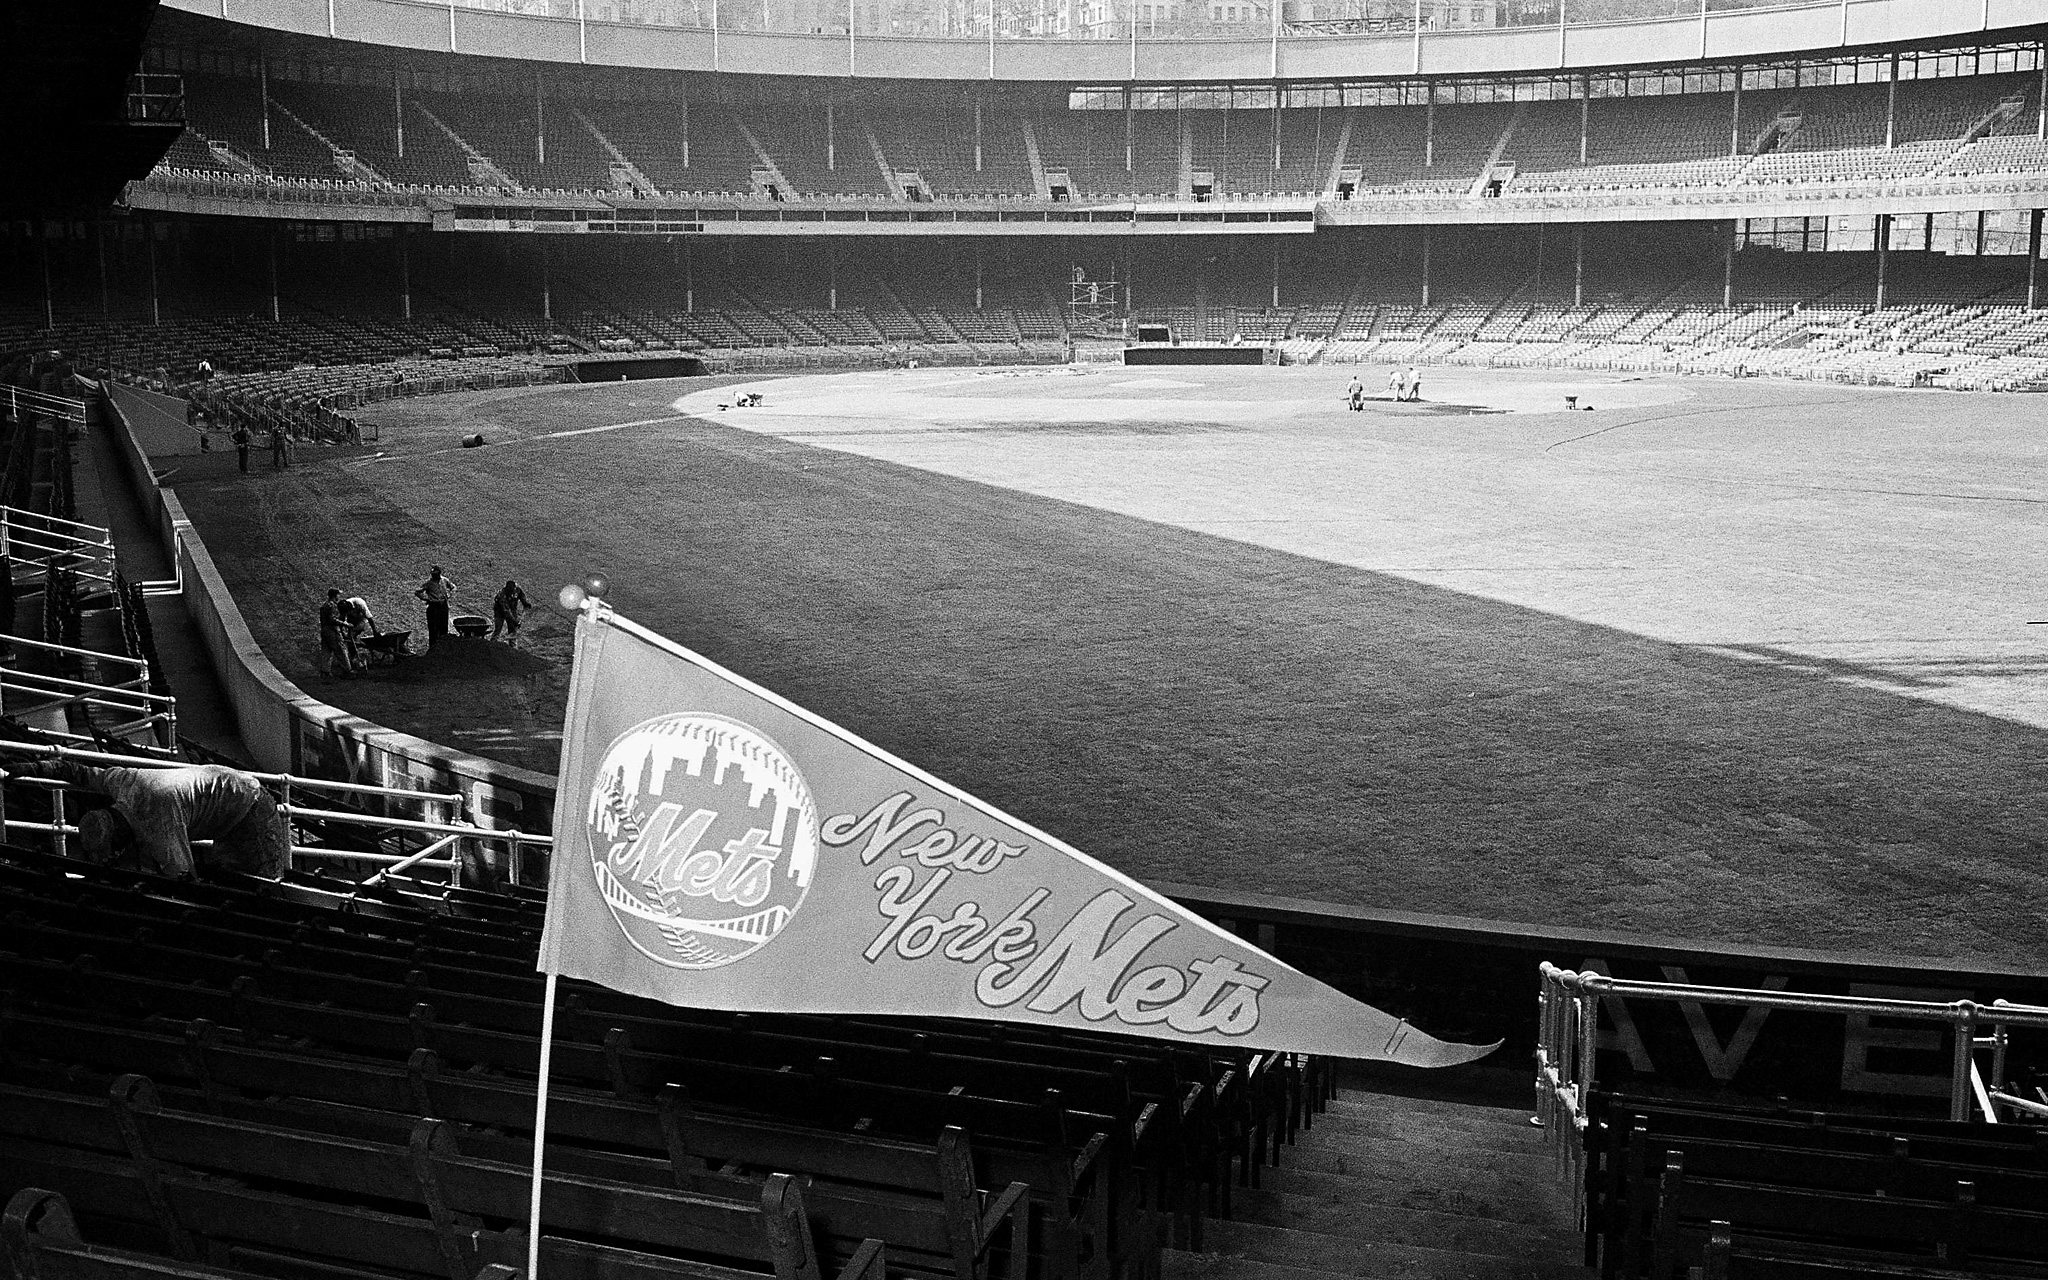 Opening Day at the Polo Grounds. Guess what? The Mets lost.